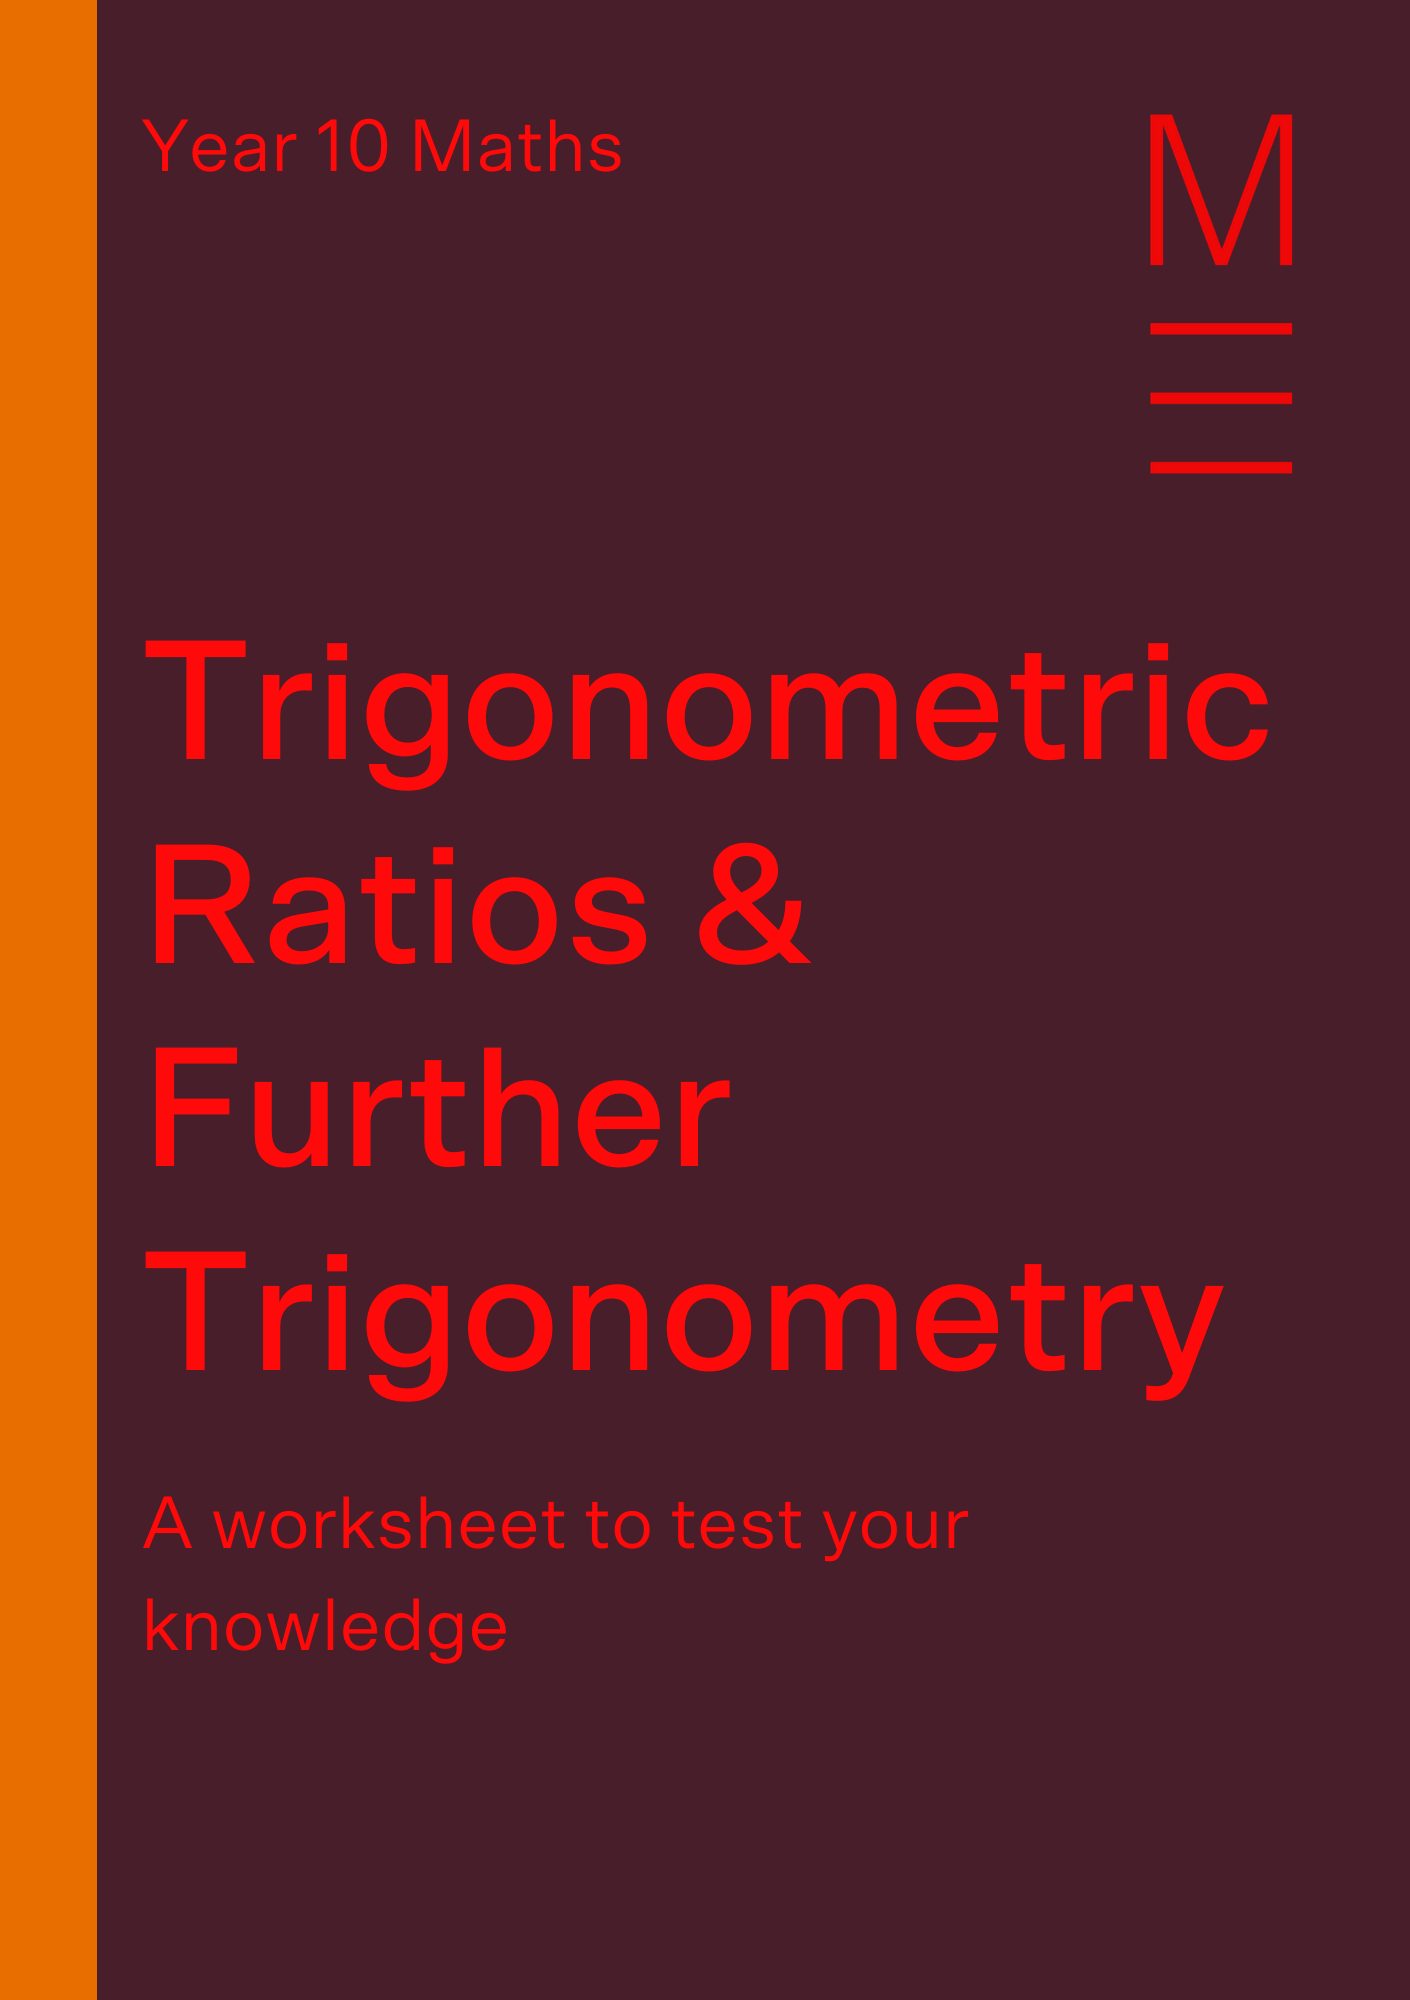 Part 3 Trigonometric Ratios Free Worksheet